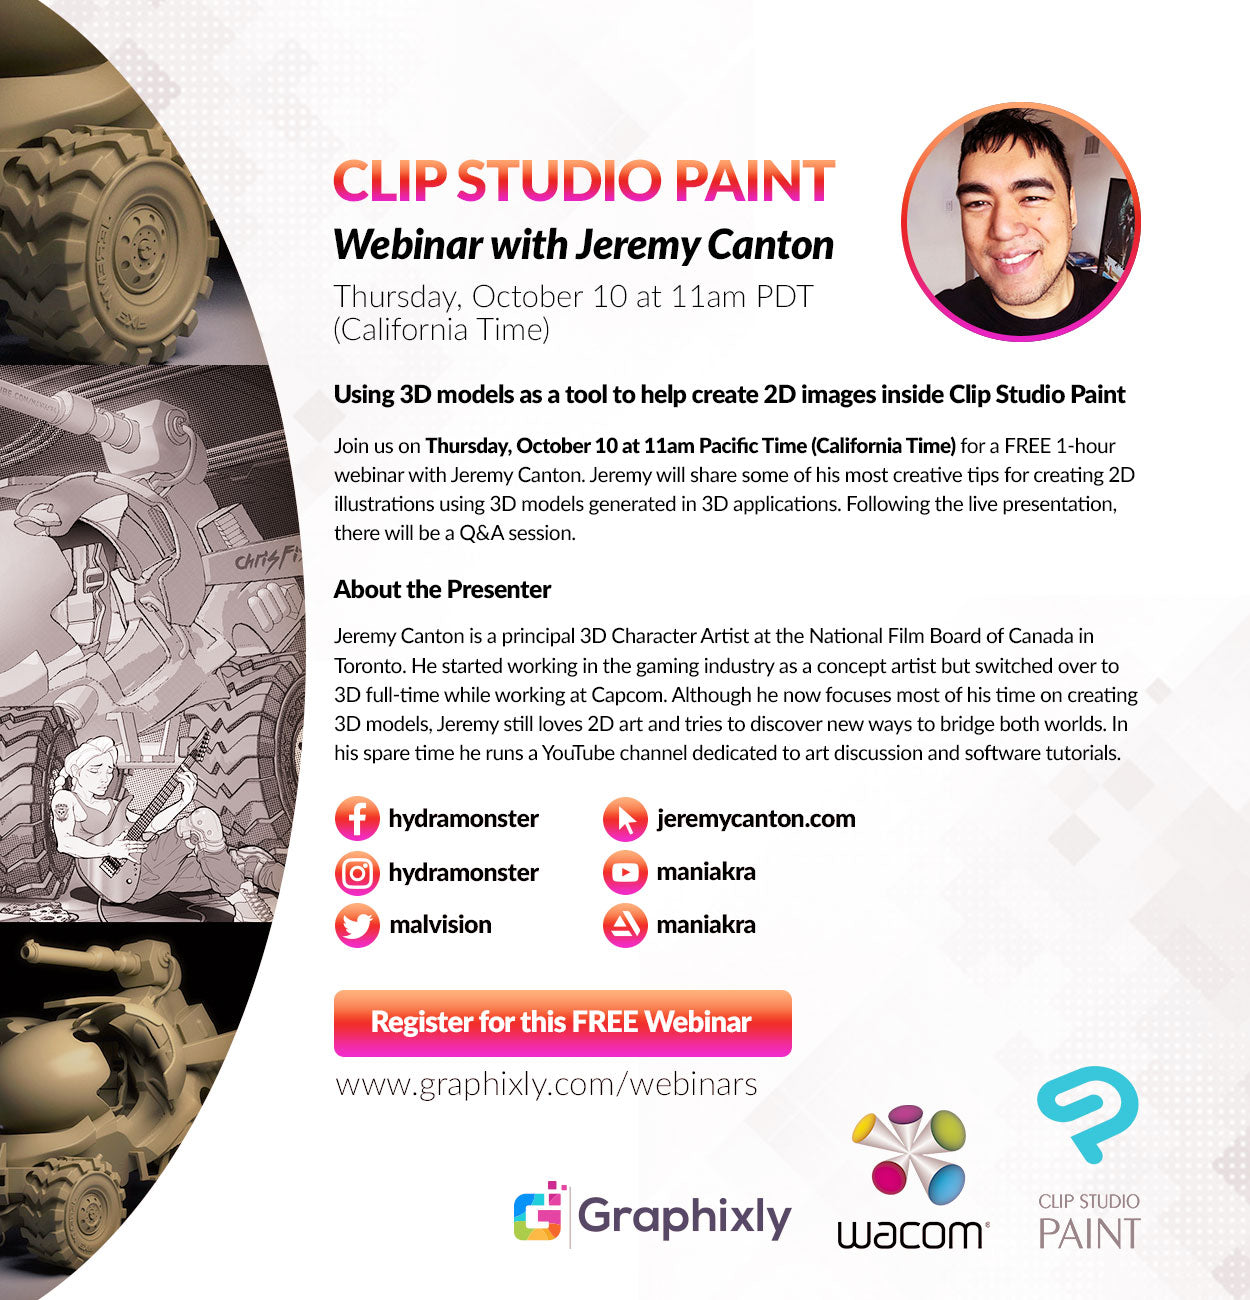 Webinar - Using 3D models as a tool to help create 2D images inside CLIP STUDIO PAINT